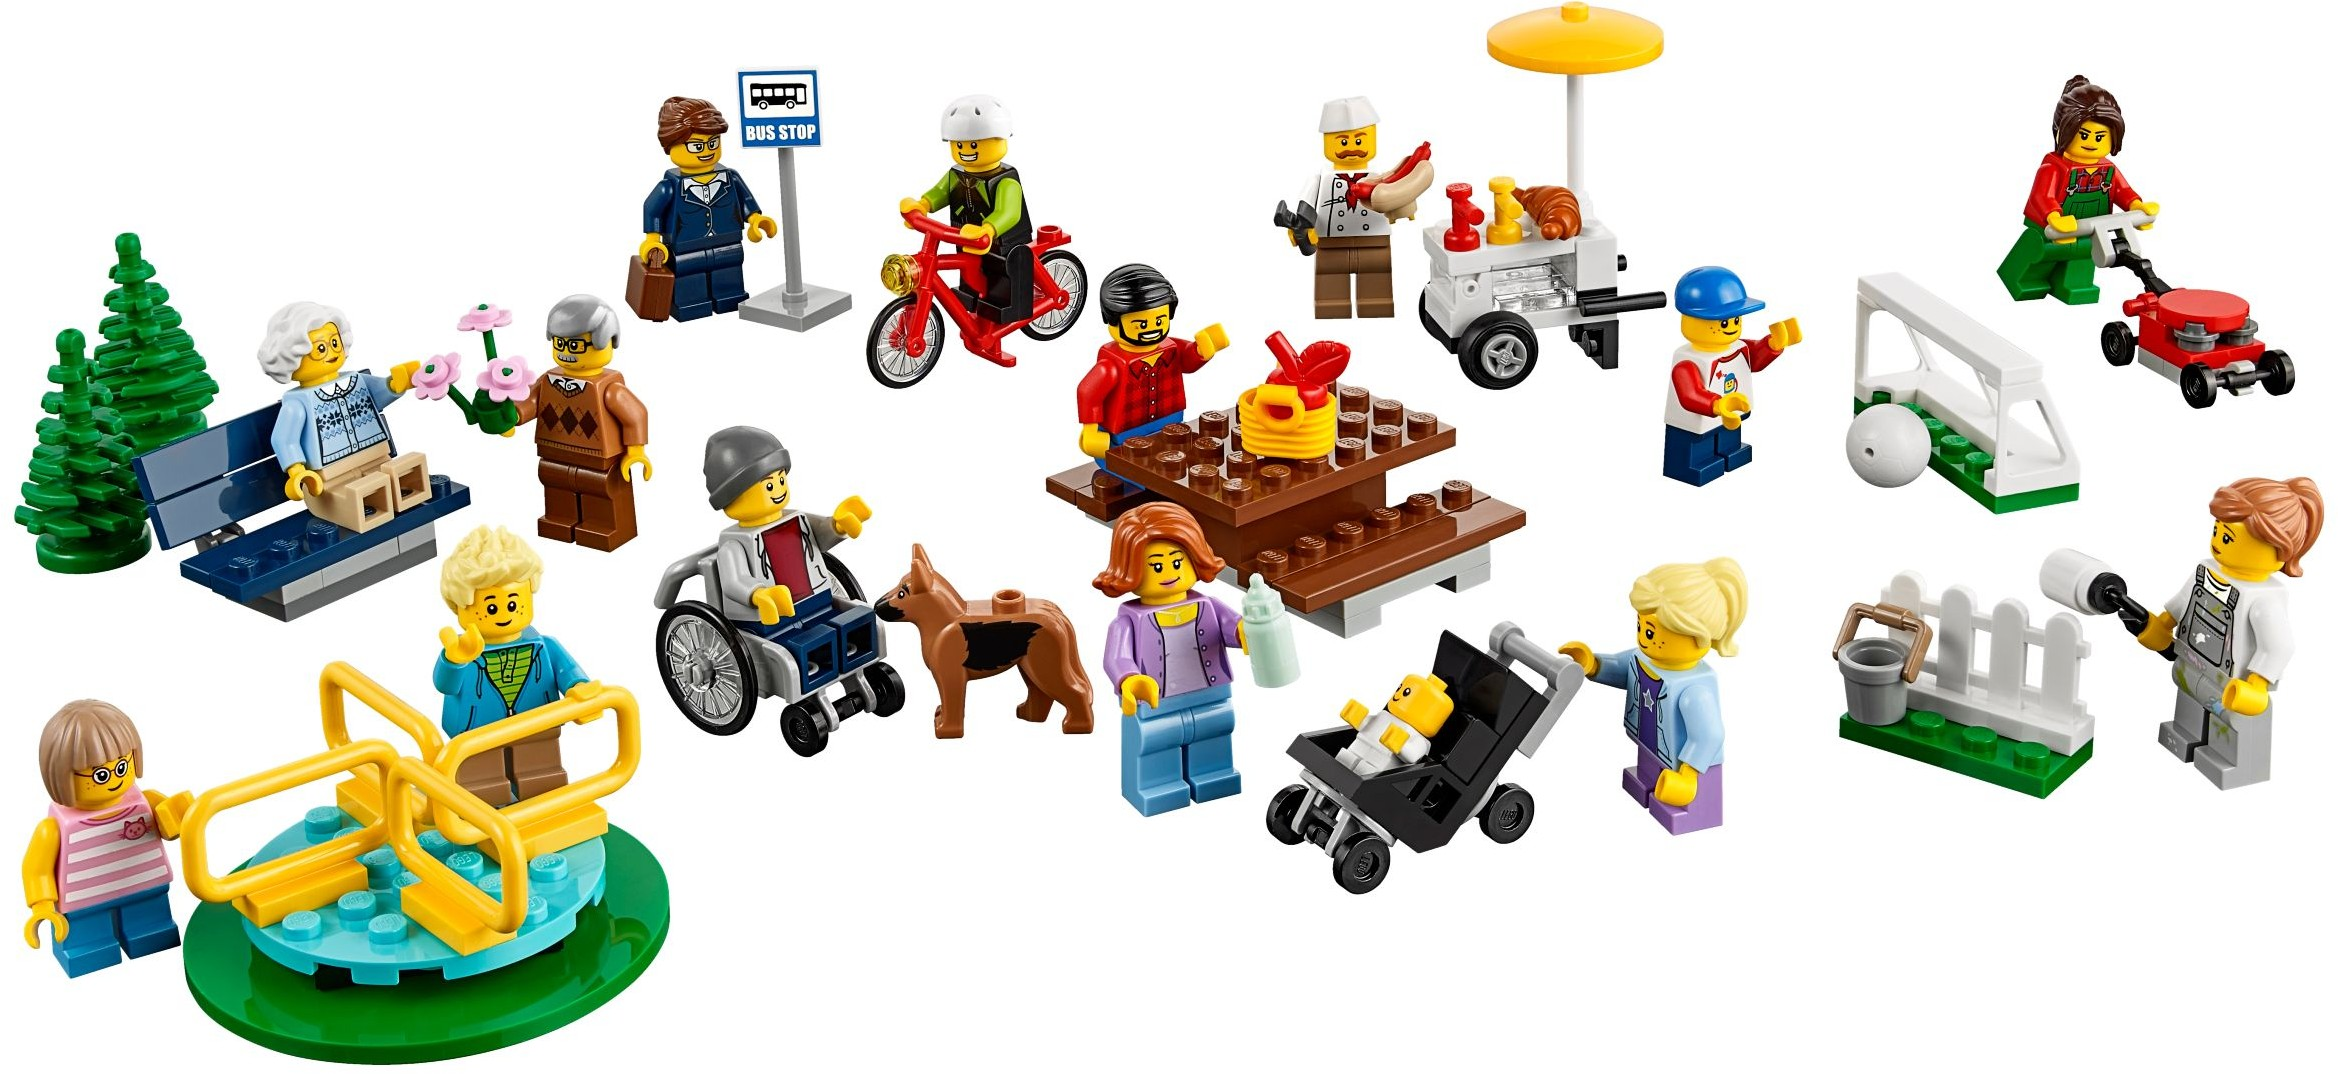 LEGO City Fun in the Park - City People Pack - 60134 - Photo 2